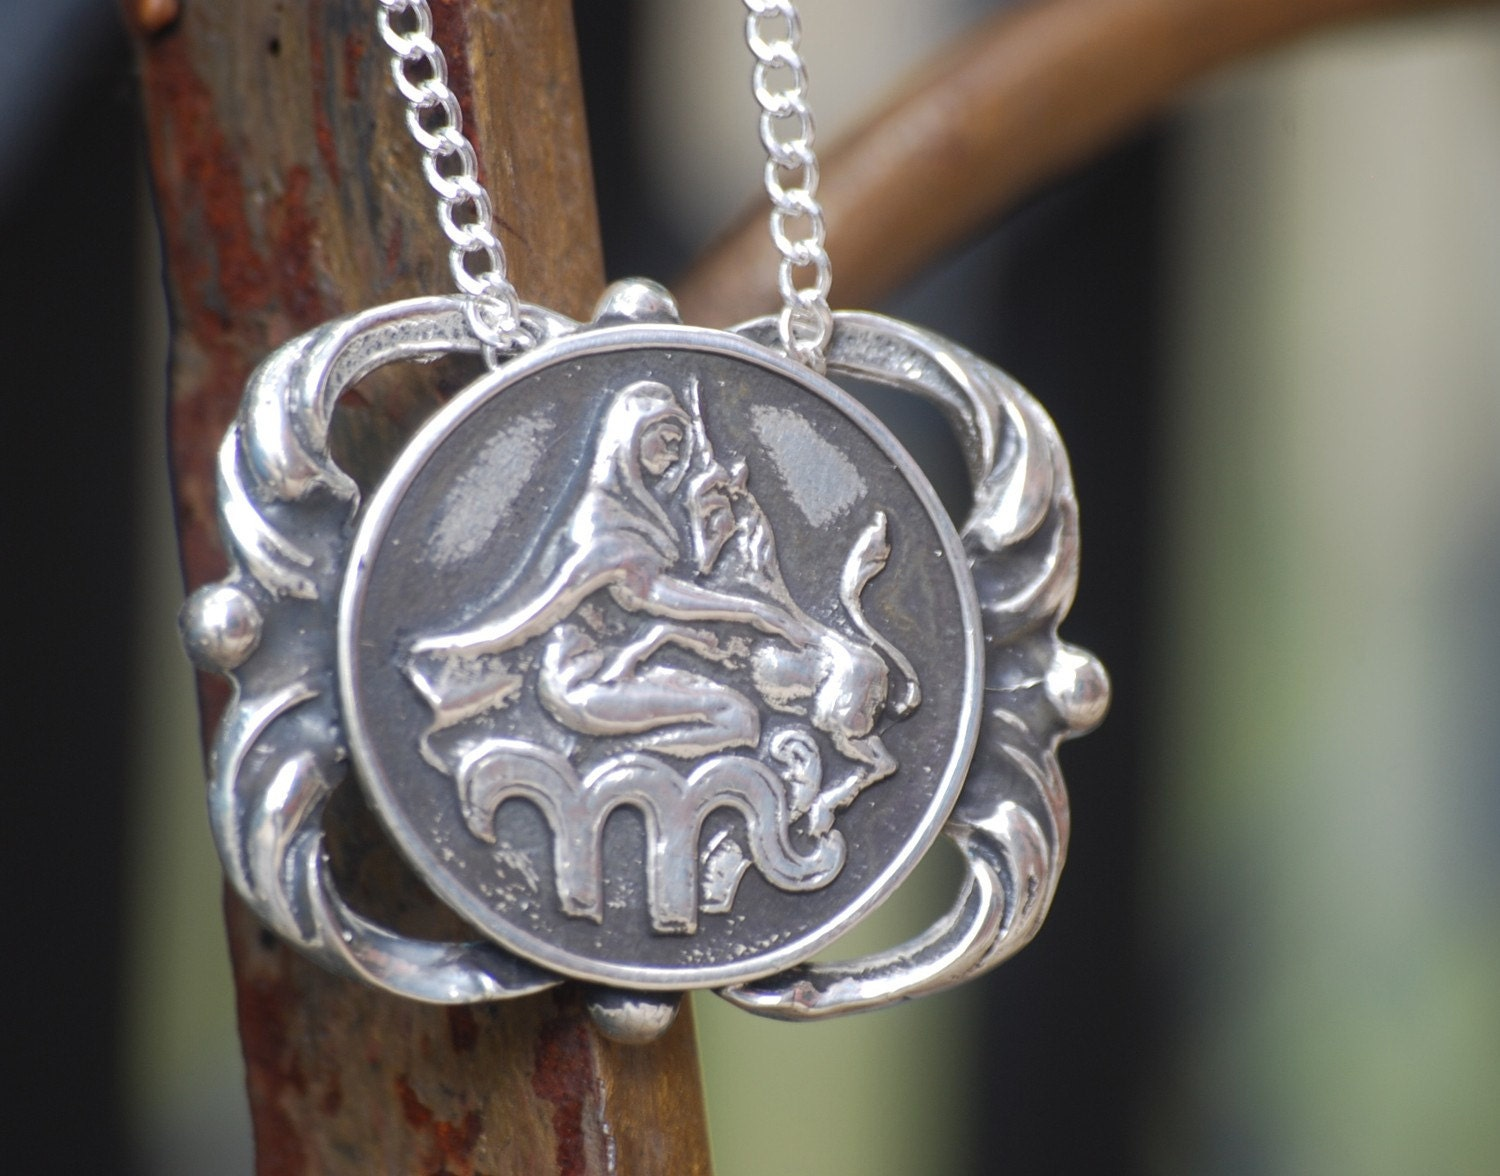 VIRGO - Sirius Starchild for Treehouse Brooklyn Zodiac Sterling Silver Necklace  (FREE SHIPPING TOO)